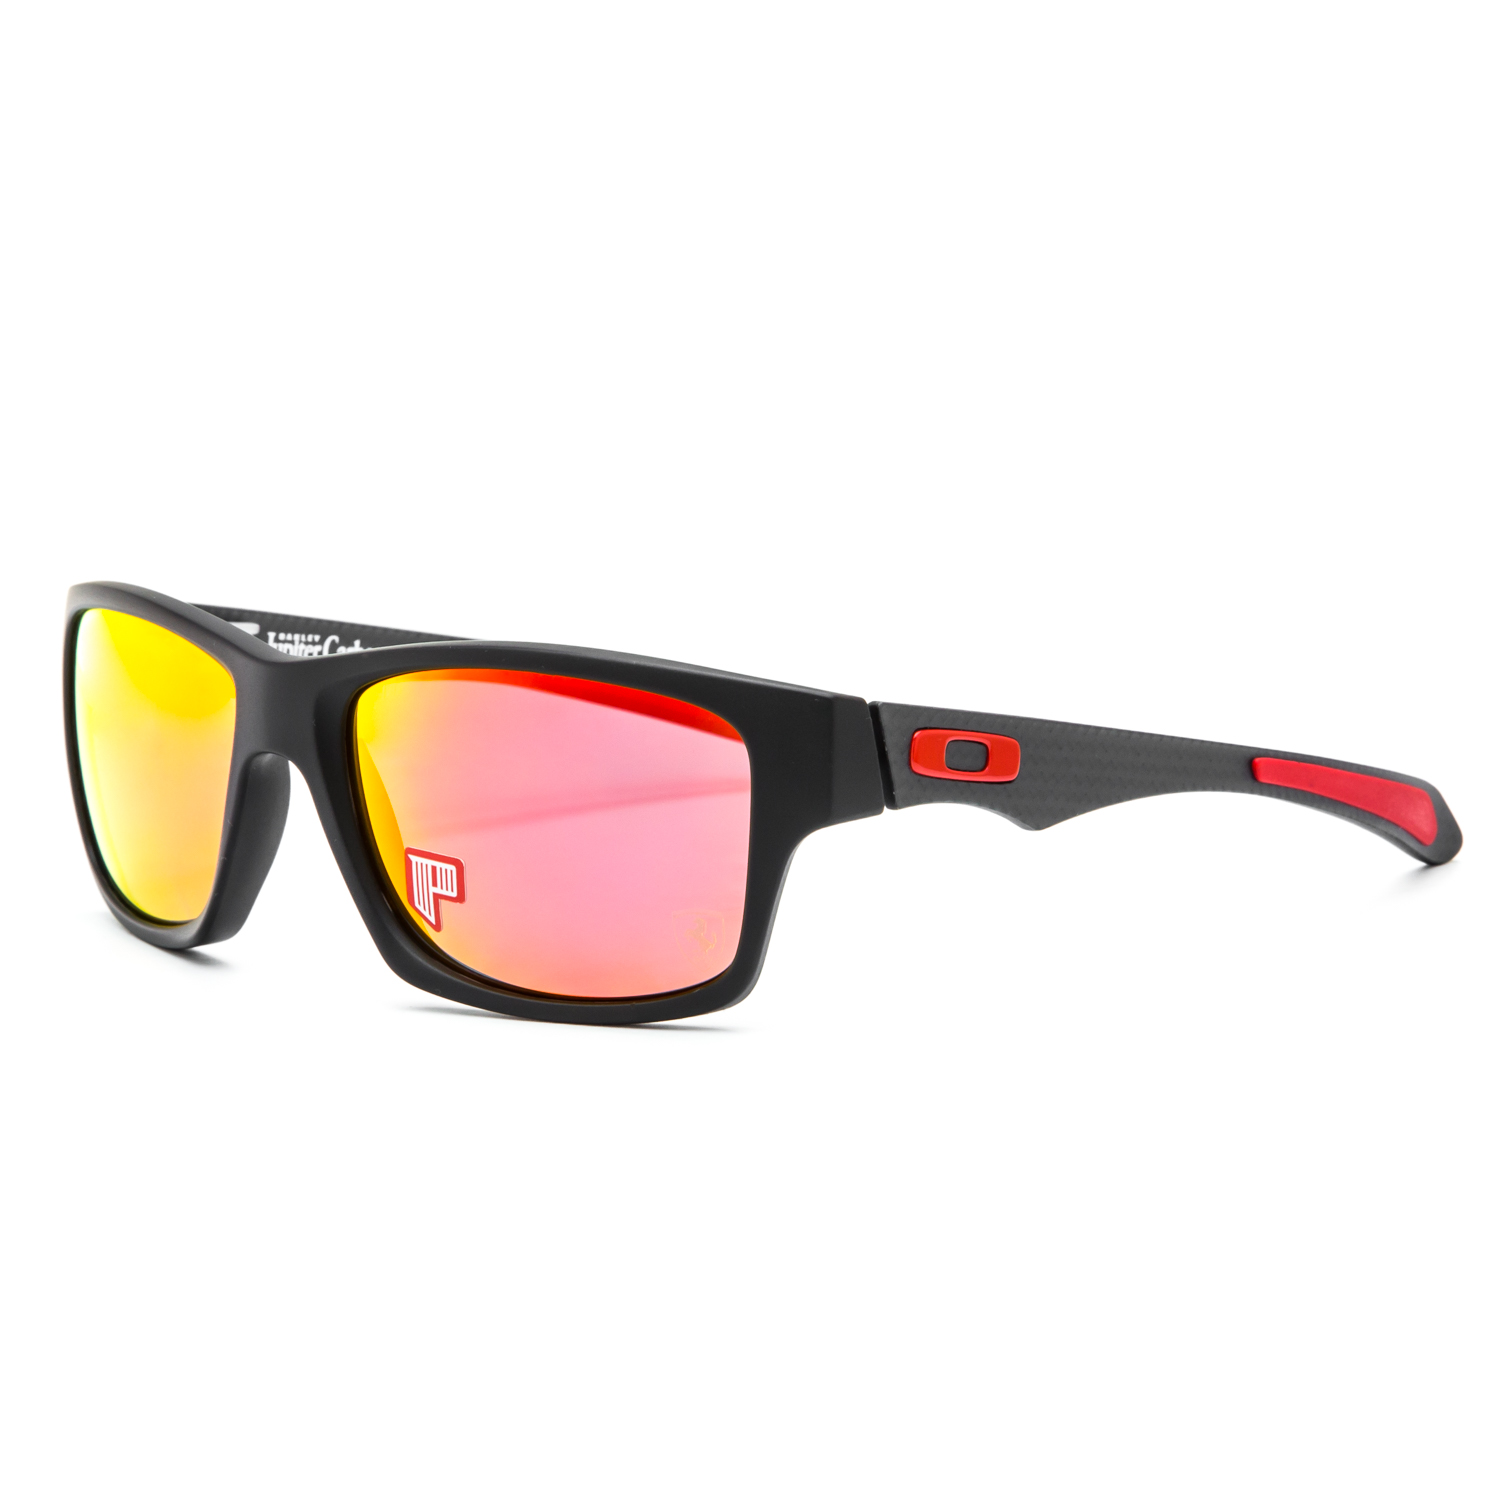 1d1817c768 Details about Oakley Ferrari Jupiter Carbon Sunglasses OO9220-06 Carbon    Ruby Irid Polarized